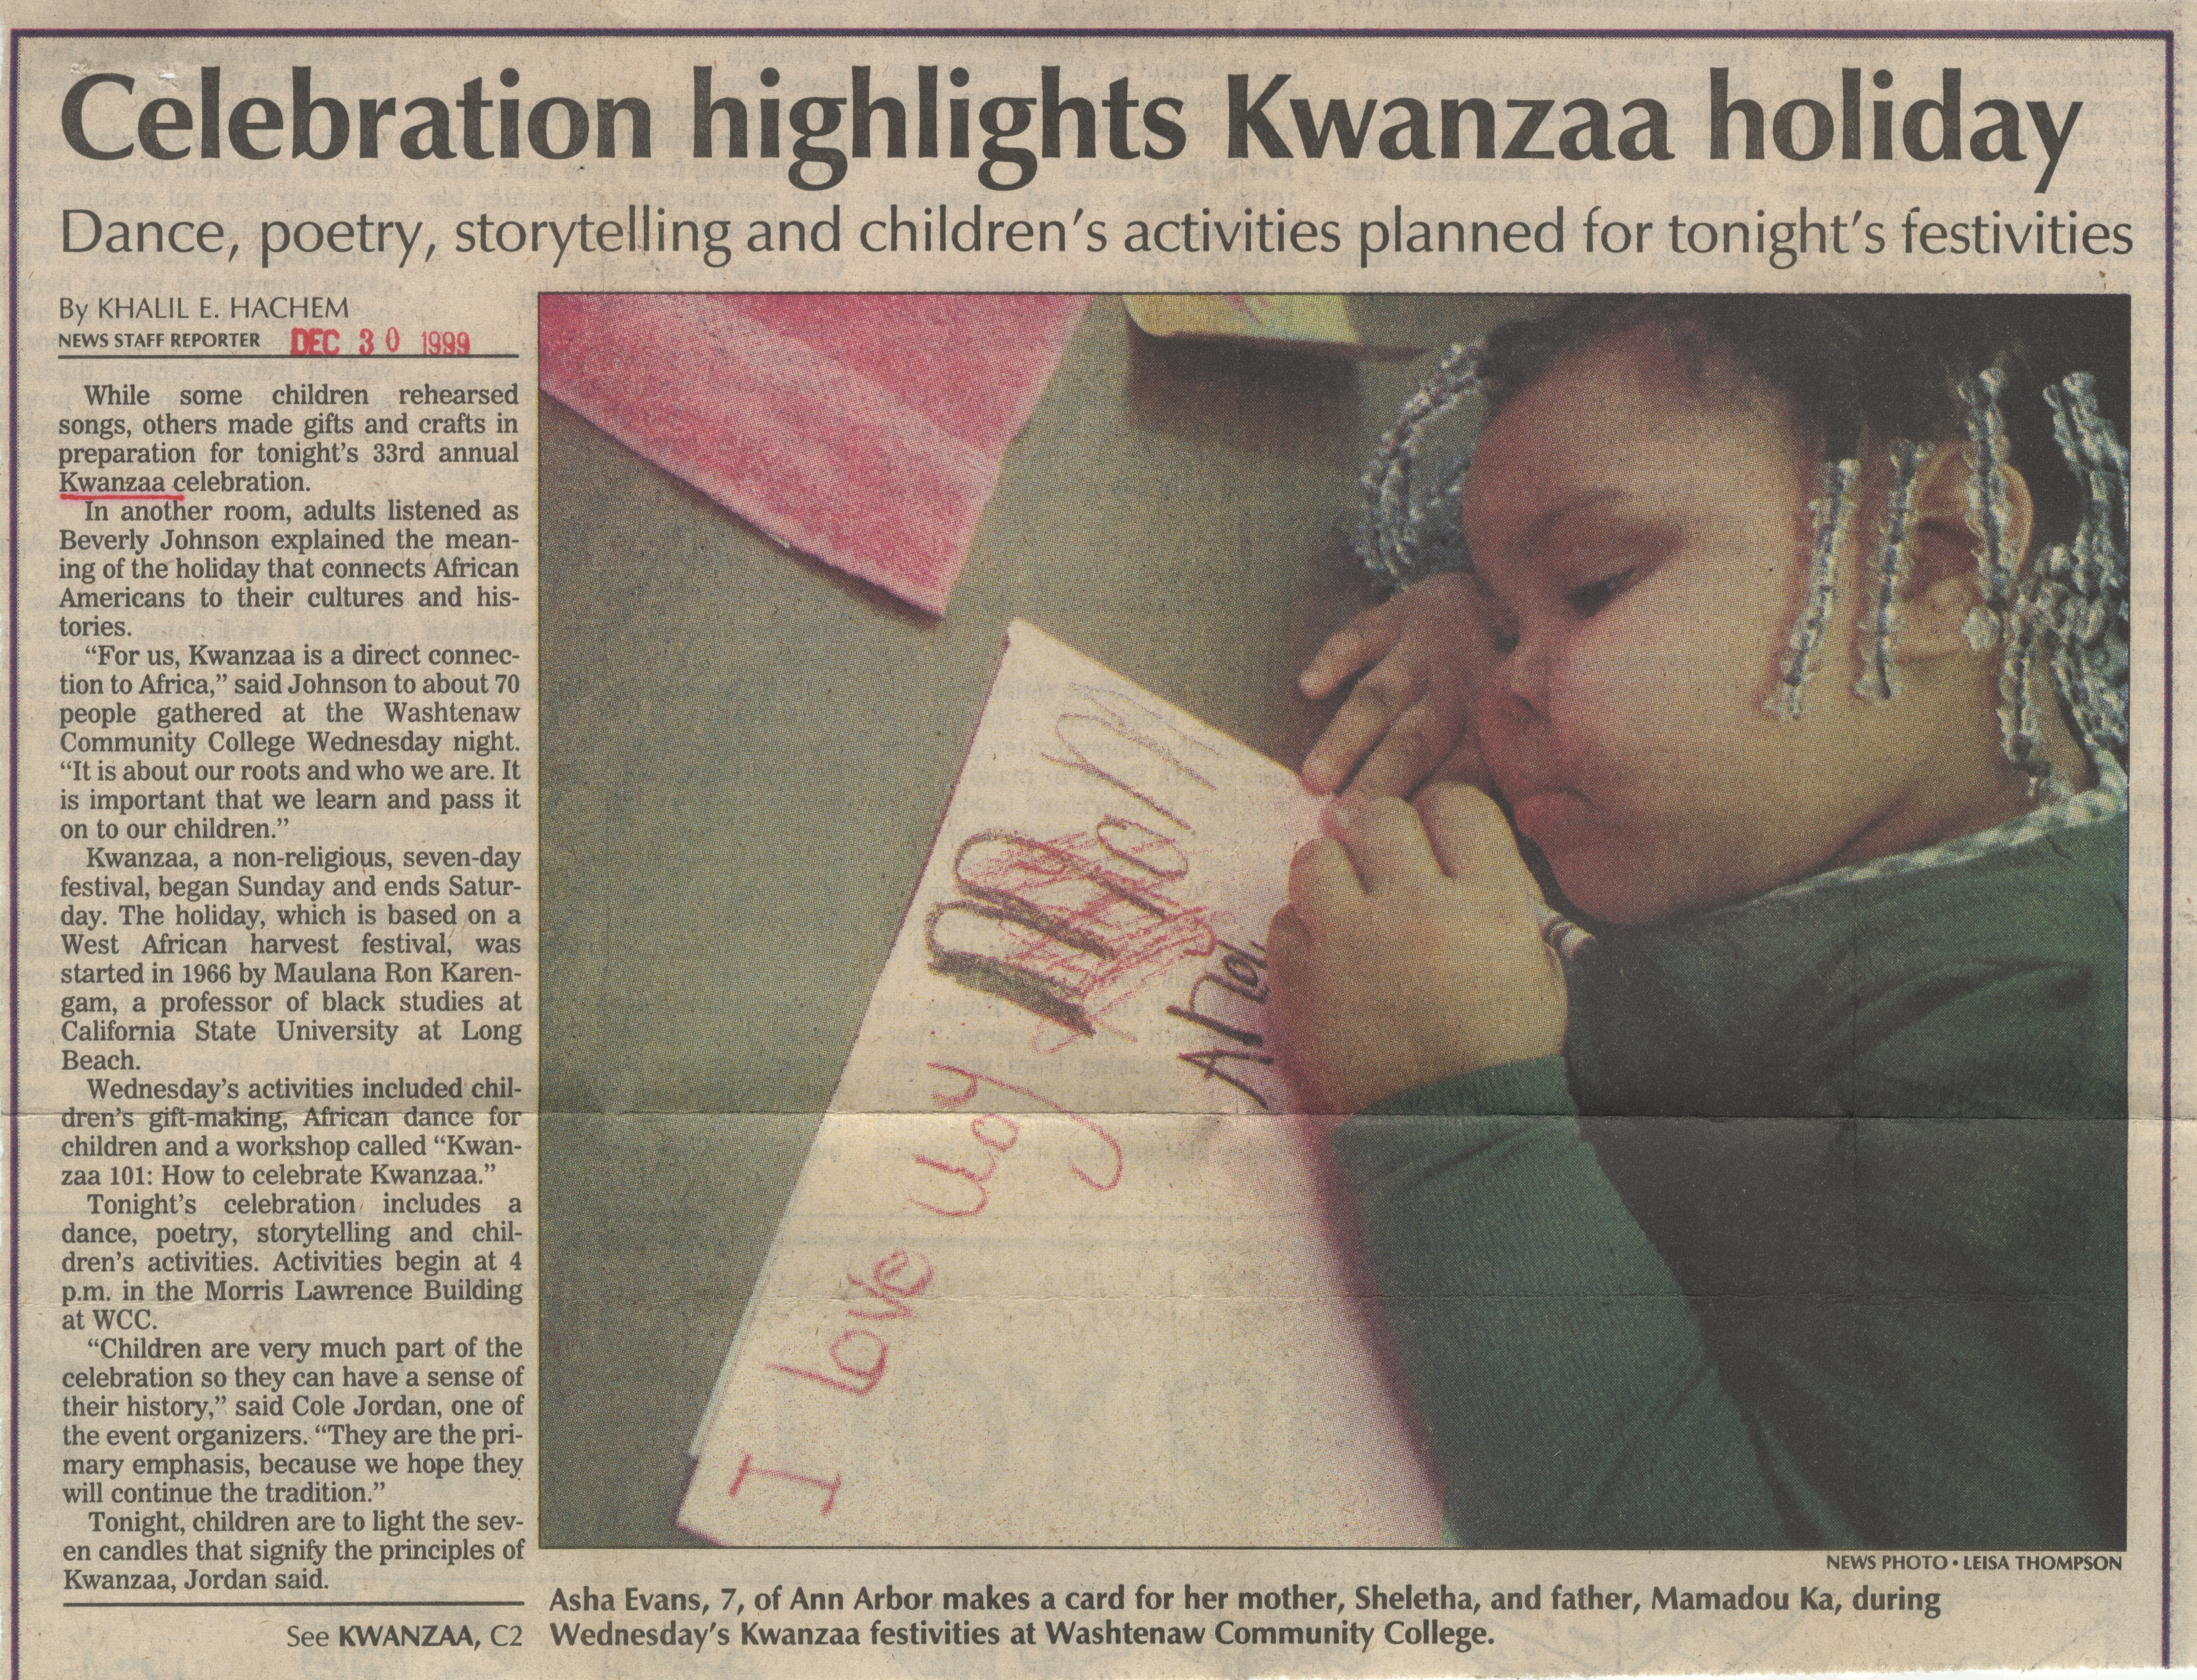 Celebration Highlights Kwanzaa Holiday image